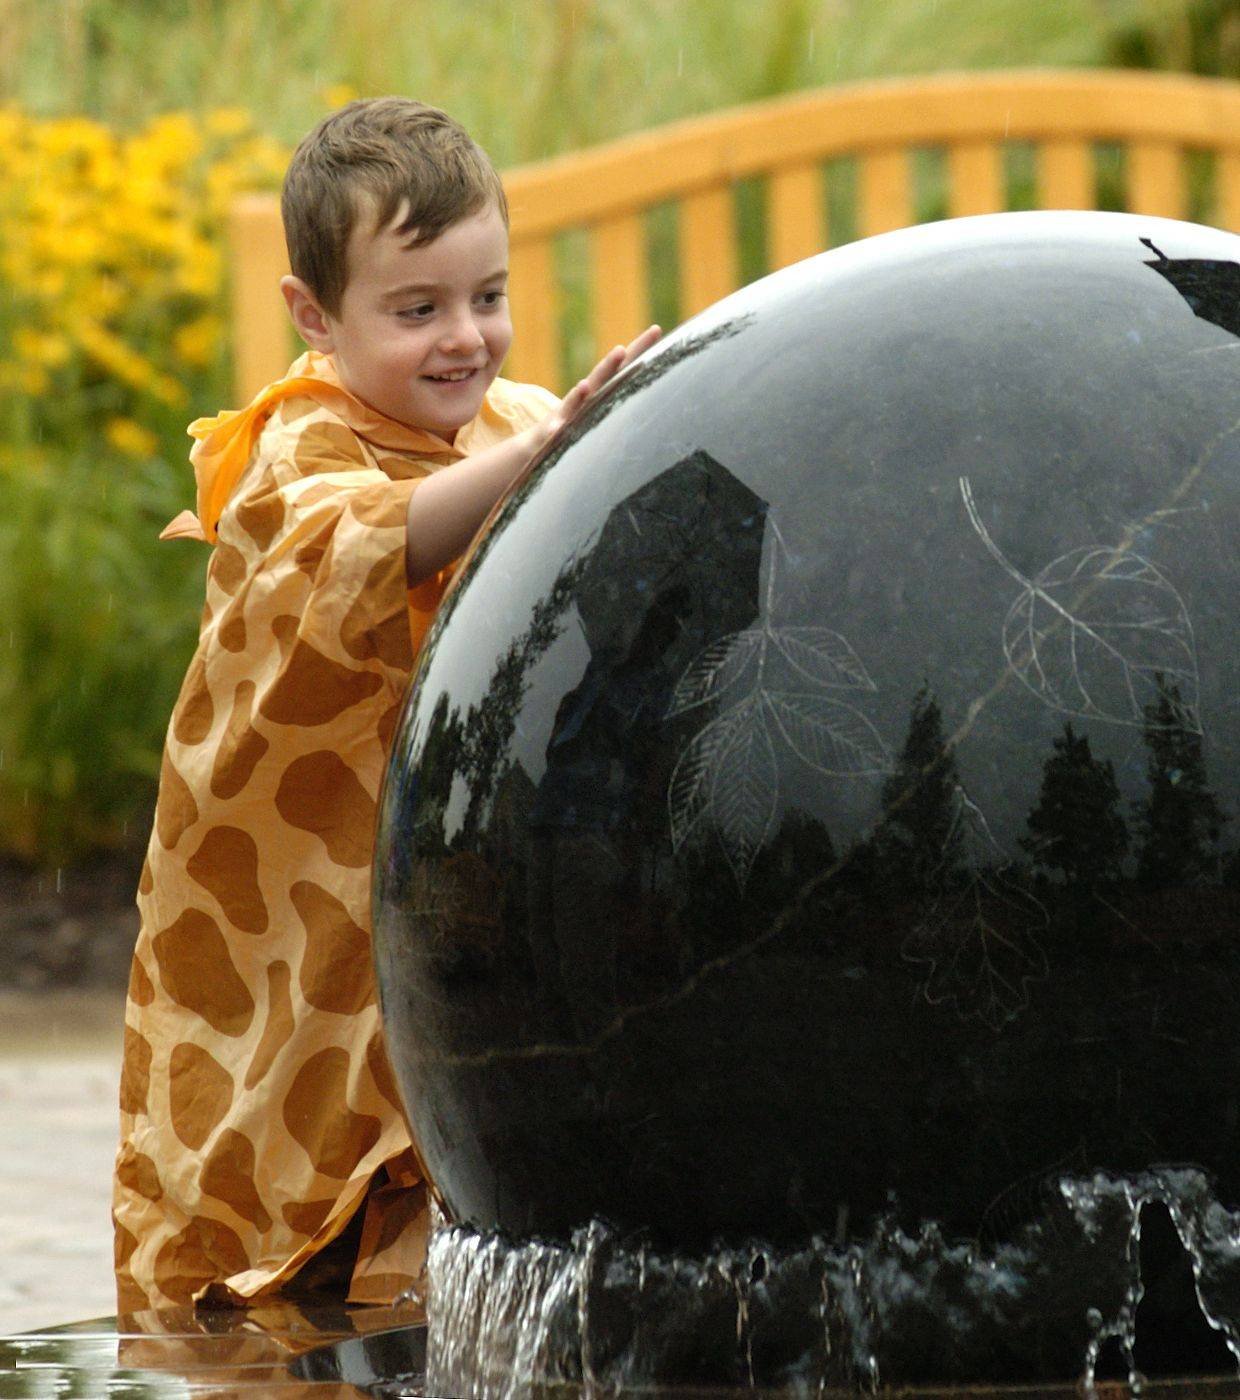 Justin Ligeski of Plainfield was just 4 years old when the Morton Arboretum's Children's Garden opened in August 2005. More than 1.8 million people have visited the garden since its opening.